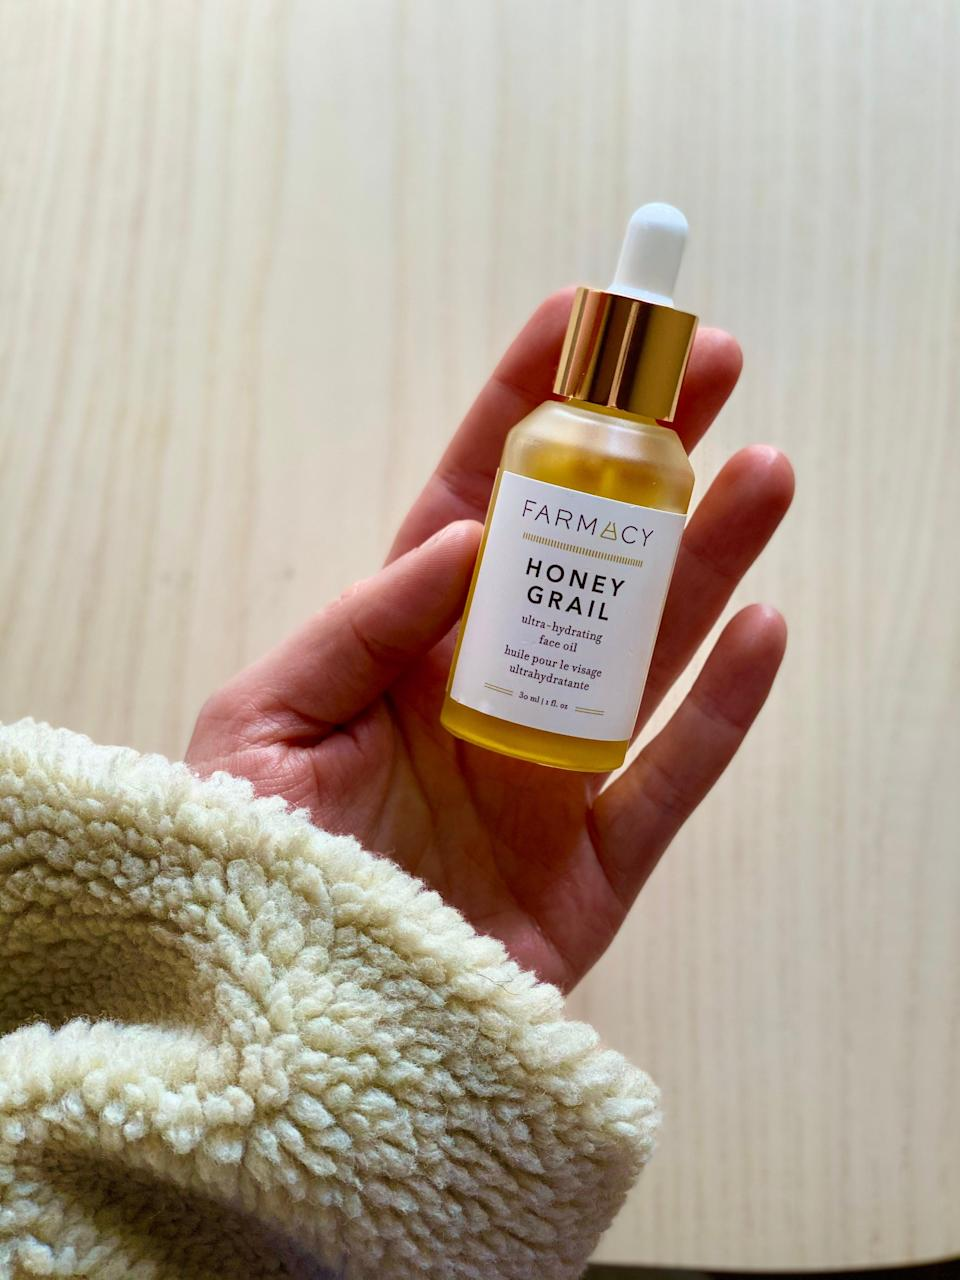 """<h2>Farmacy Honey Grail Ultra-Hydrating Face Oil</h2><br>""""I have sensitive skin (eczema-prone, easily flushed, struggled with perioral dermatitis for five years) — so when I find a product that actually harmonizes with my complexion instead of traumatizing it, it's a good day. I'd had Farmacy's all-natural skincare on my radar but had yet to actually try any of its premium products until Honey Grail. And, it's just as divine as its clever name suggests. It's pretty spot-on described as a """"fast-absorbing, antioxidant-rich face oil for ultimate hydration and glow!"""" The little bottle features a serum-like dropper that dispenses a luxe oil that feels and smells like a lightweight version of honey — likely due to the fact that it's made with real honey, along with sea buckthorn and a five-flower oil blend (including omegas, vitamins, and amino acids). Since I've been using it in the mornings after splashing my face with cool water, I've noticed improvements; my complexion feels plumper, smoother, brighter, and, most importantly, soothed! A little goes a long way and I've got plans to lean on this product as a sensitive-winter-skin holy grail (or, should I say honey grail?)."""" <em>– Elizabeth Buxton, Editor</em><br><br><em>Shop <strong><a href=""""https://www.farmacybeauty.com/products/honey-grail"""" rel=""""nofollow noopener"""" target=""""_blank"""" data-ylk=""""slk:Farmacy"""" class=""""link rapid-noclick-resp"""">Farmacy</a></strong></em><br><br><strong>Farmacy</strong> Honey Grail, $, available at <a href=""""https://go.skimresources.com/?id=30283X879131&url=https%3A%2F%2Fwww.farmacybeauty.com%2Fproducts%2Fhoney-grail"""" rel=""""nofollow noopener"""" target=""""_blank"""" data-ylk=""""slk:Farmacy"""" class=""""link rapid-noclick-resp"""">Farmacy</a>"""